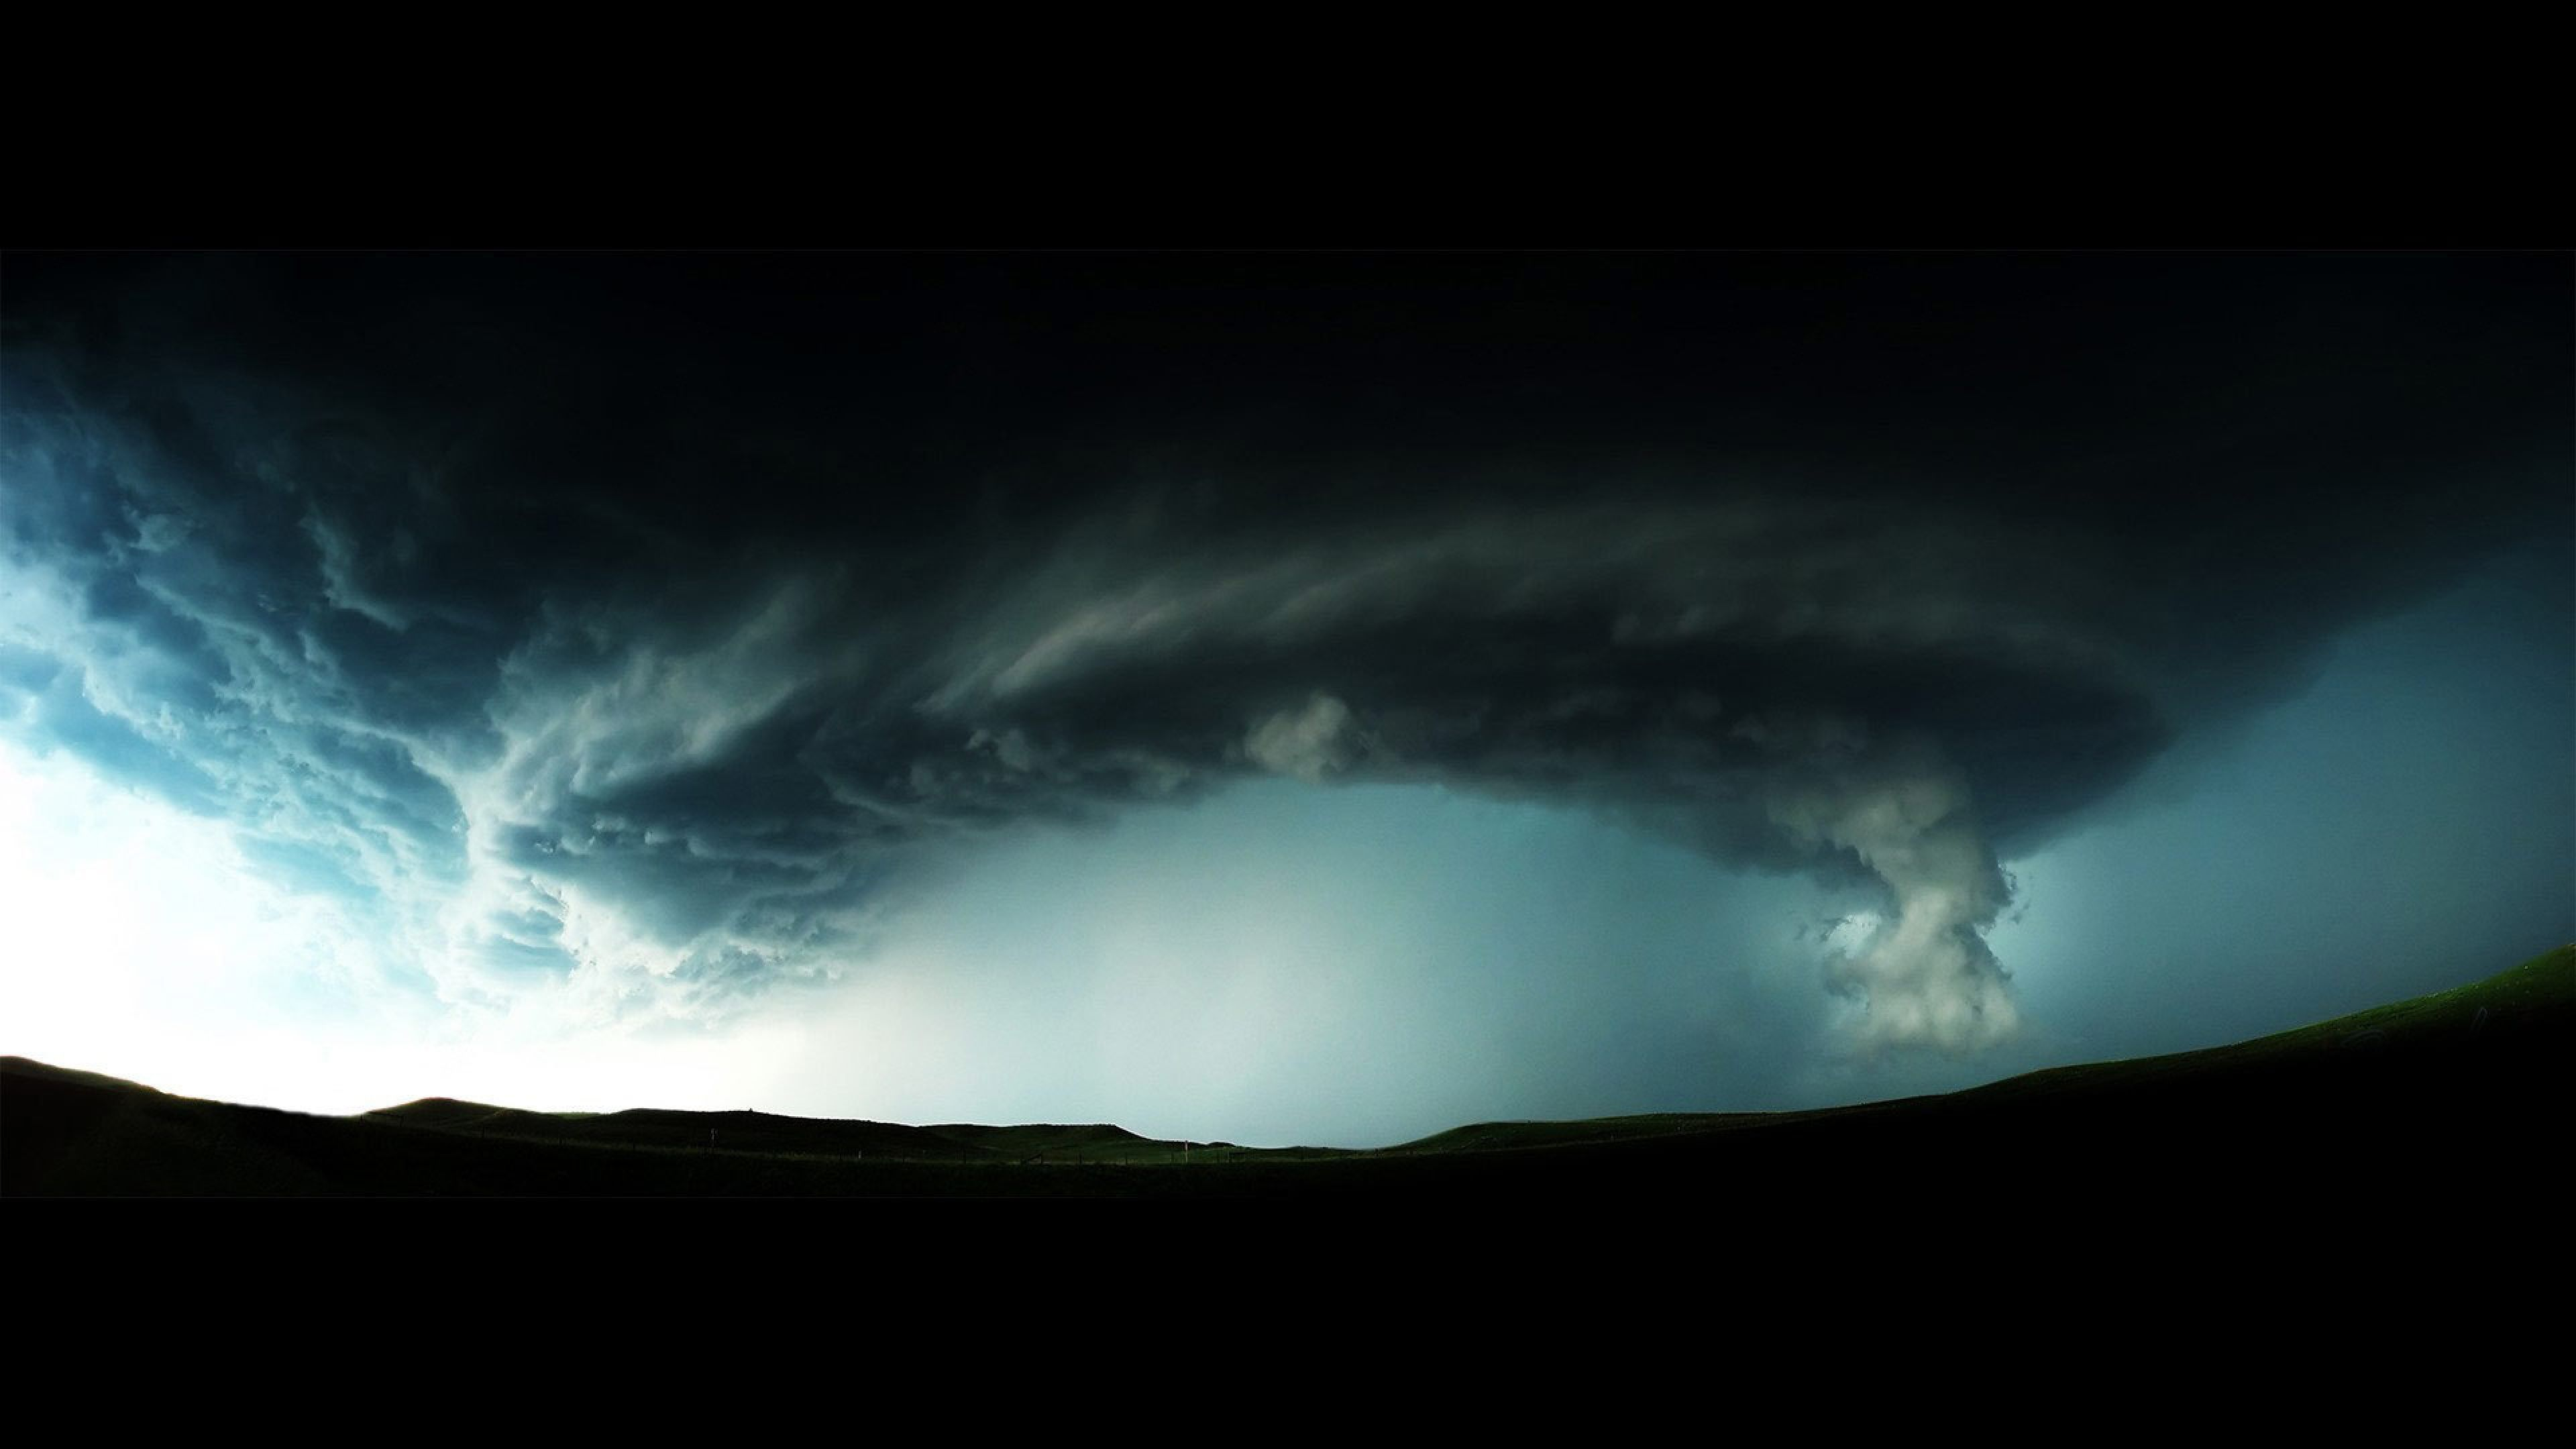 4k tornado wallpapers top free 4k tornado backgrounds wallpaperaccess - Tornado images hd ...